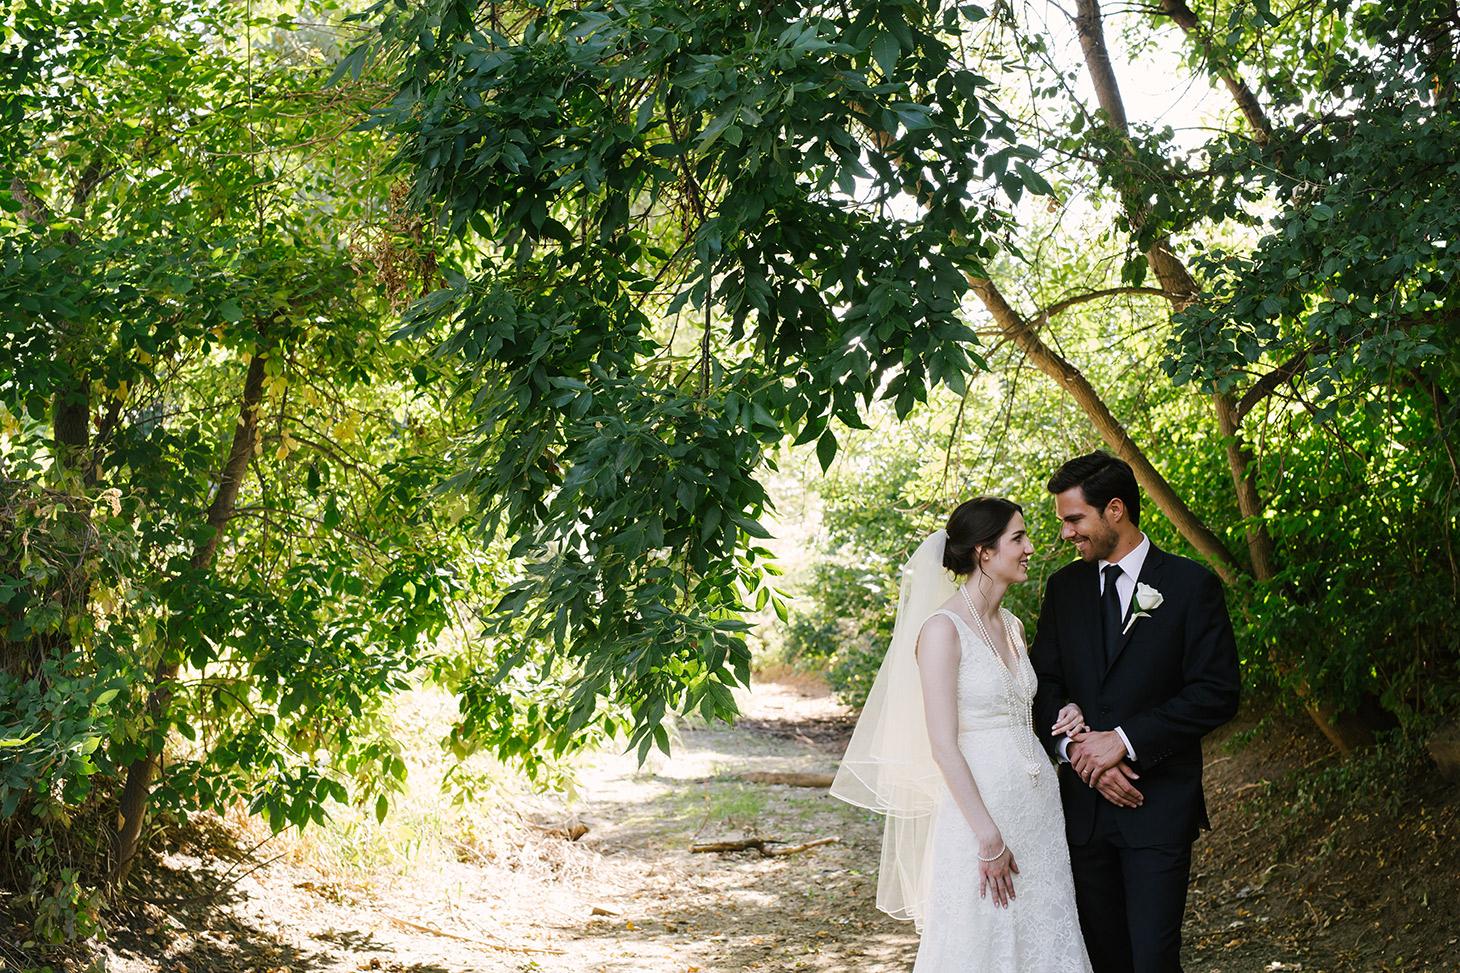 Megan-Newton-Photography-Best-Wedding-Photos-2015-254